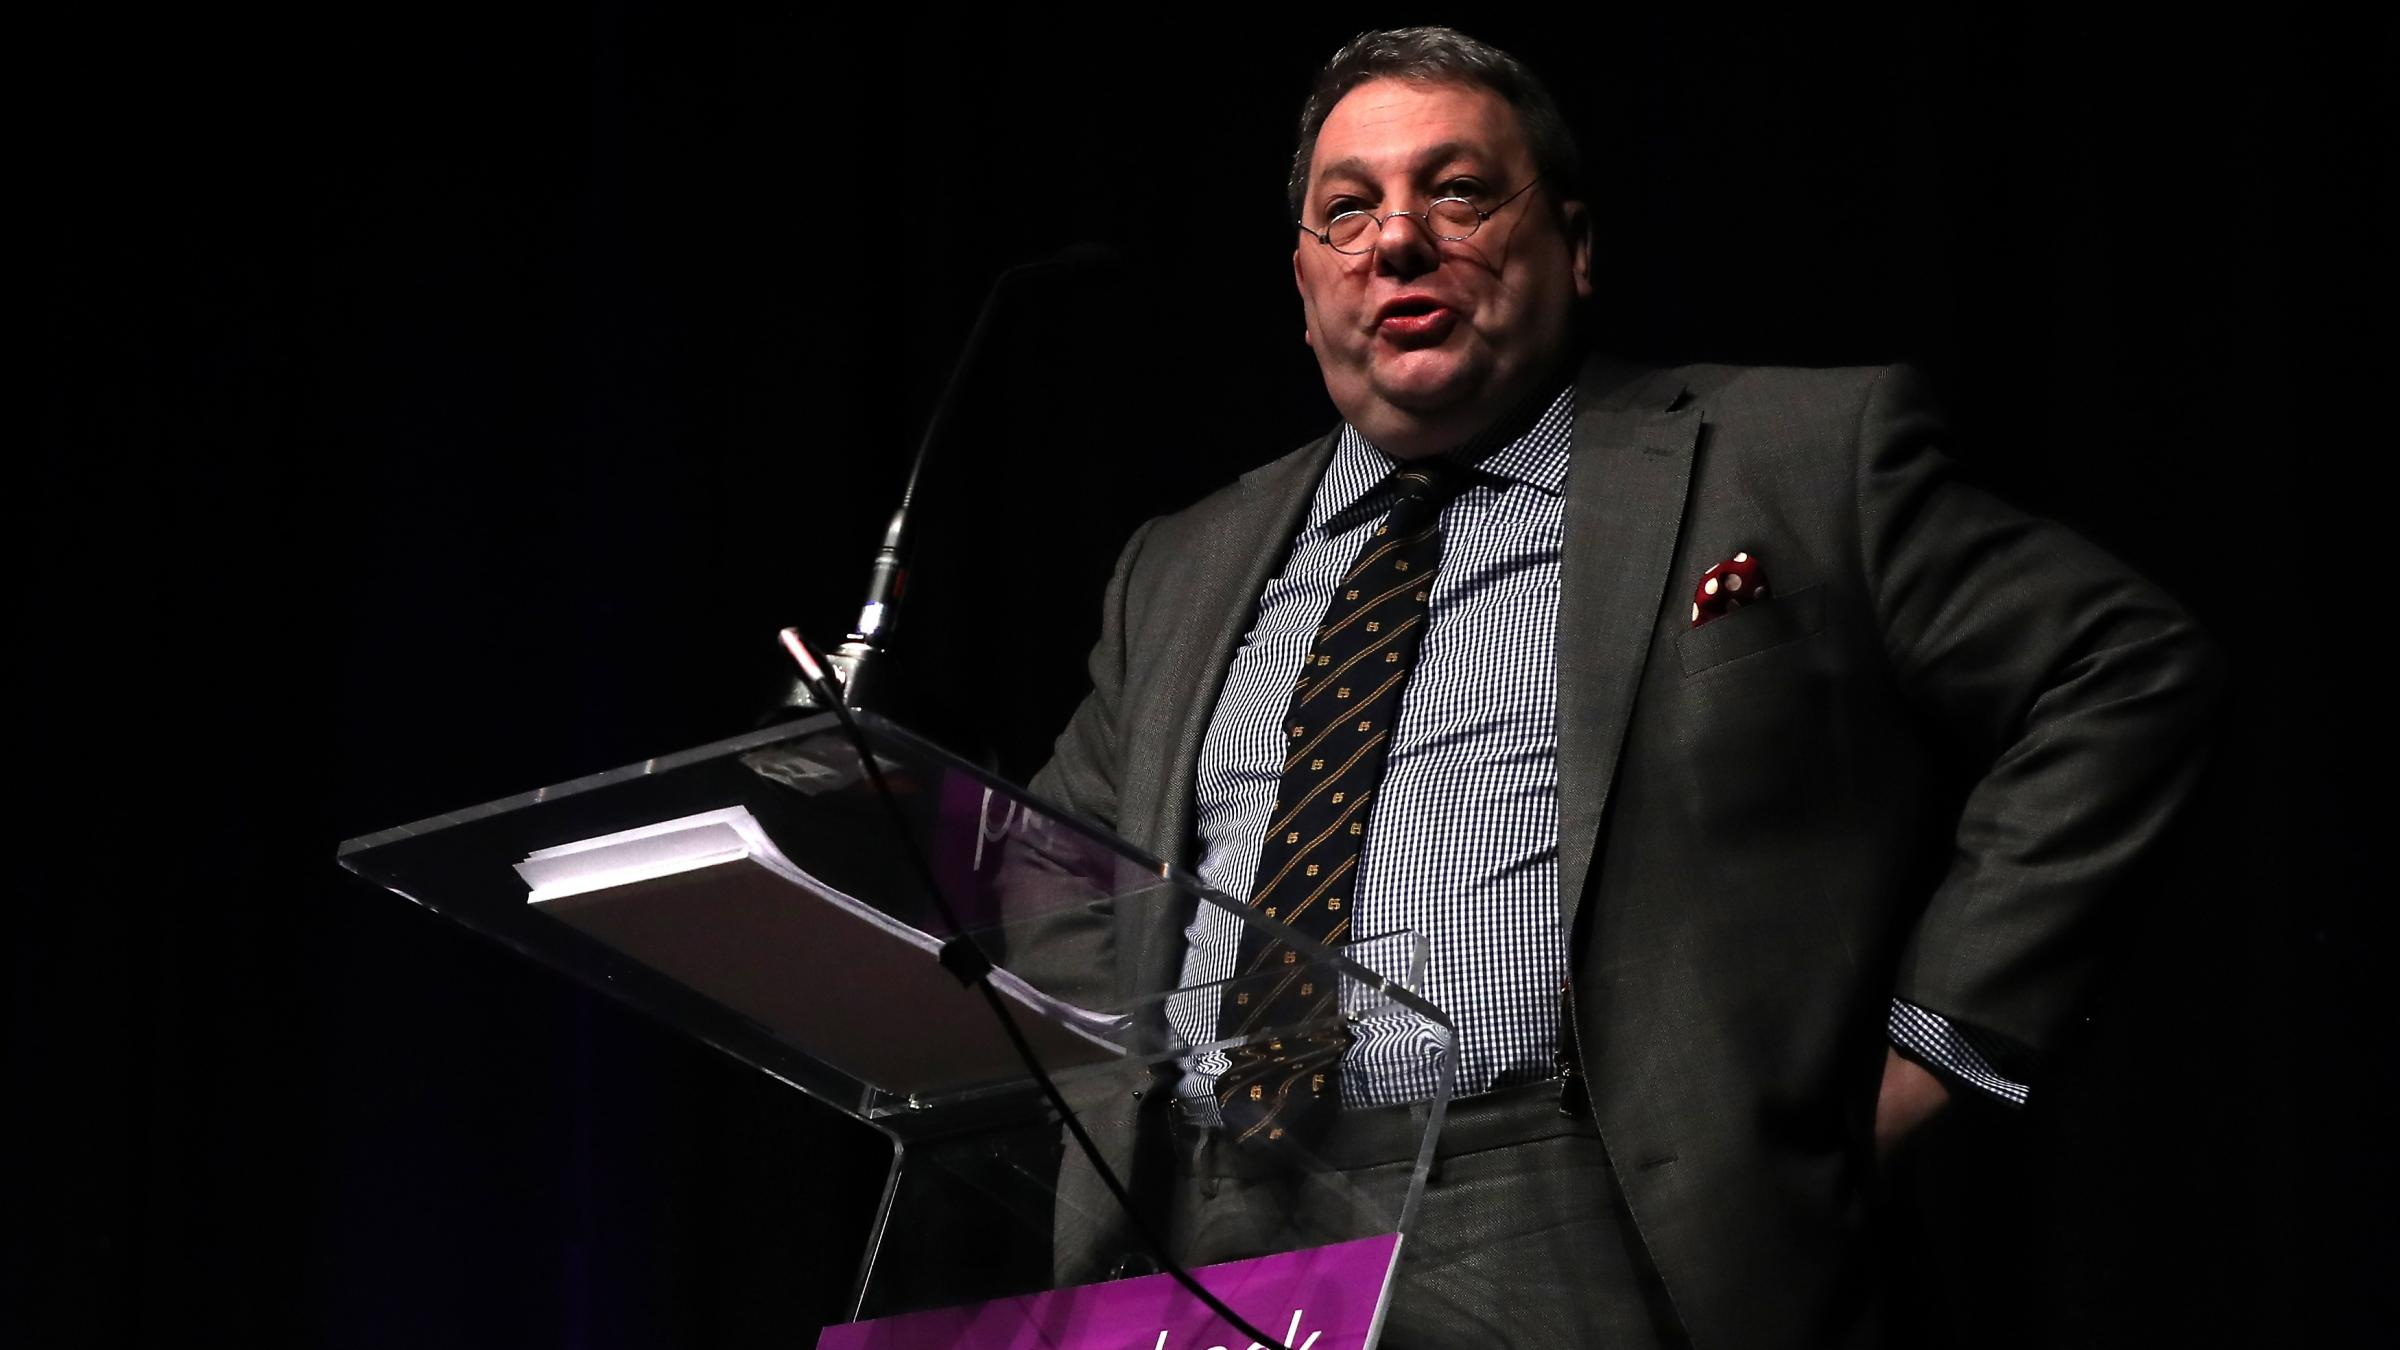 Scottish Ukip chief David Coburn to run for party leadership